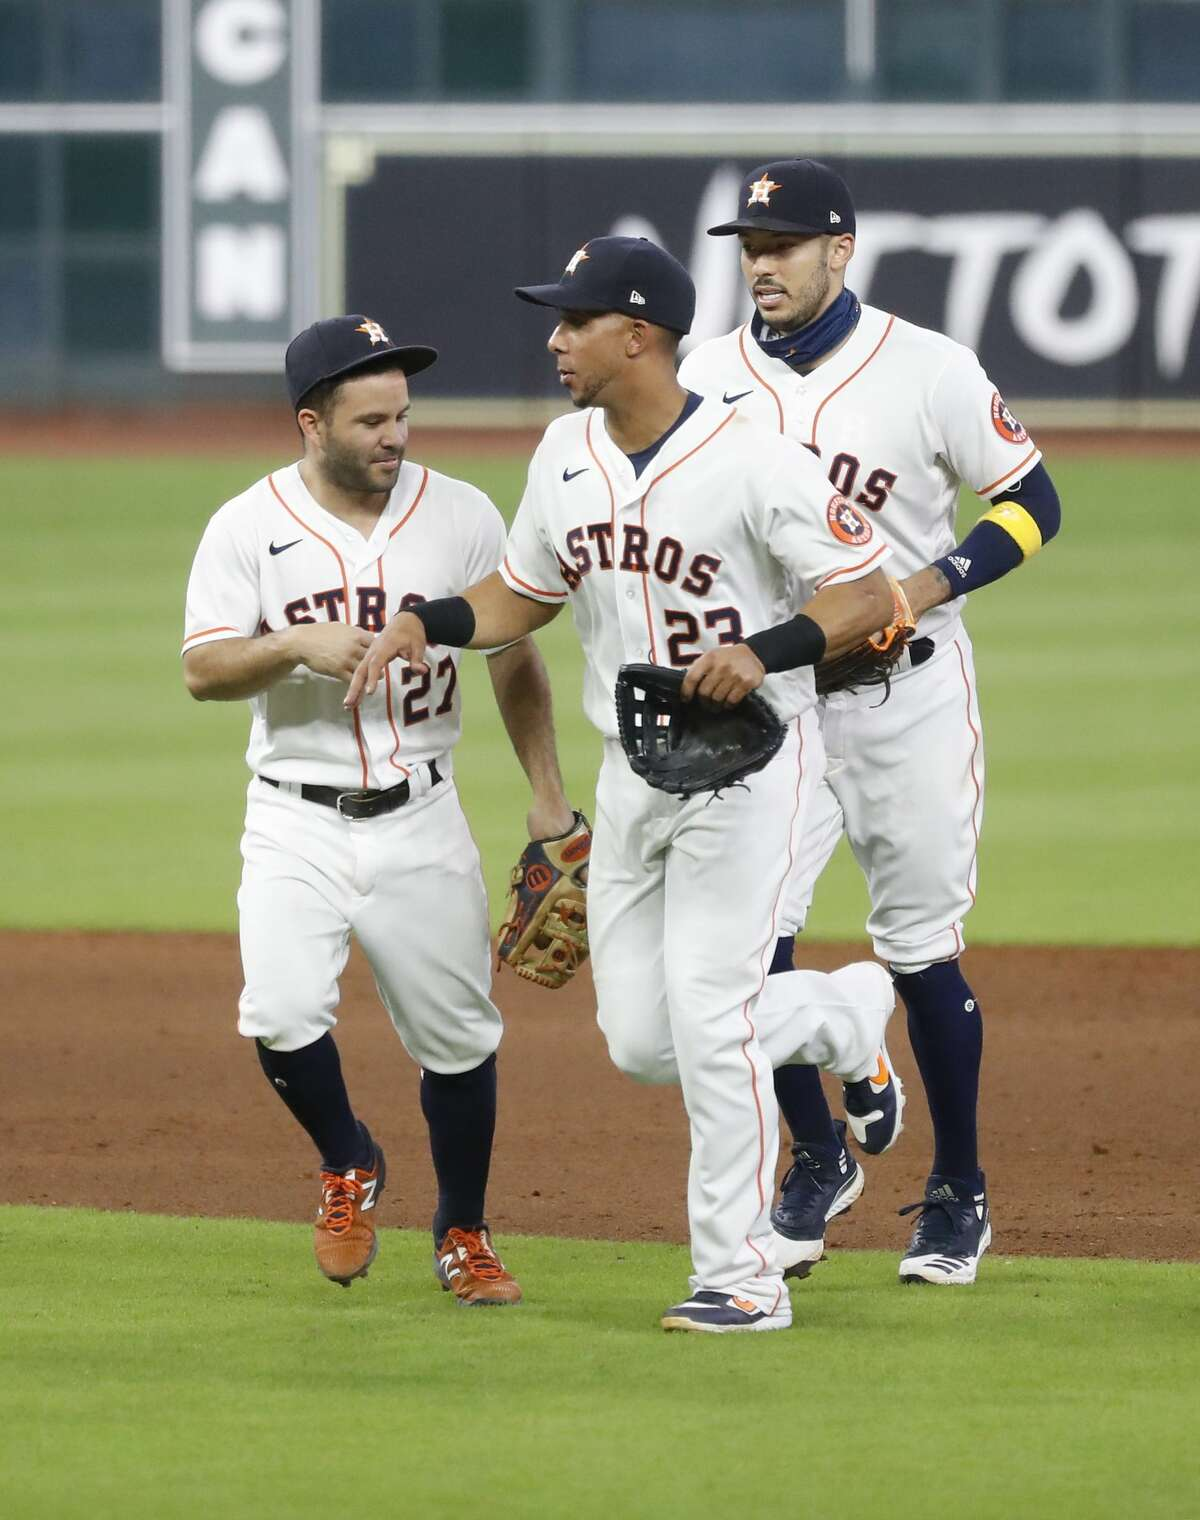 Houston Astros Michael Brantley (23) and Jose Altuve (27) celebrate the Astros 3-2 win over the Arizona Diamondbacks after the ninth inning of an MLB baseball game at Minute Maid Park, Saturday, September 19, 2020, in Houston.